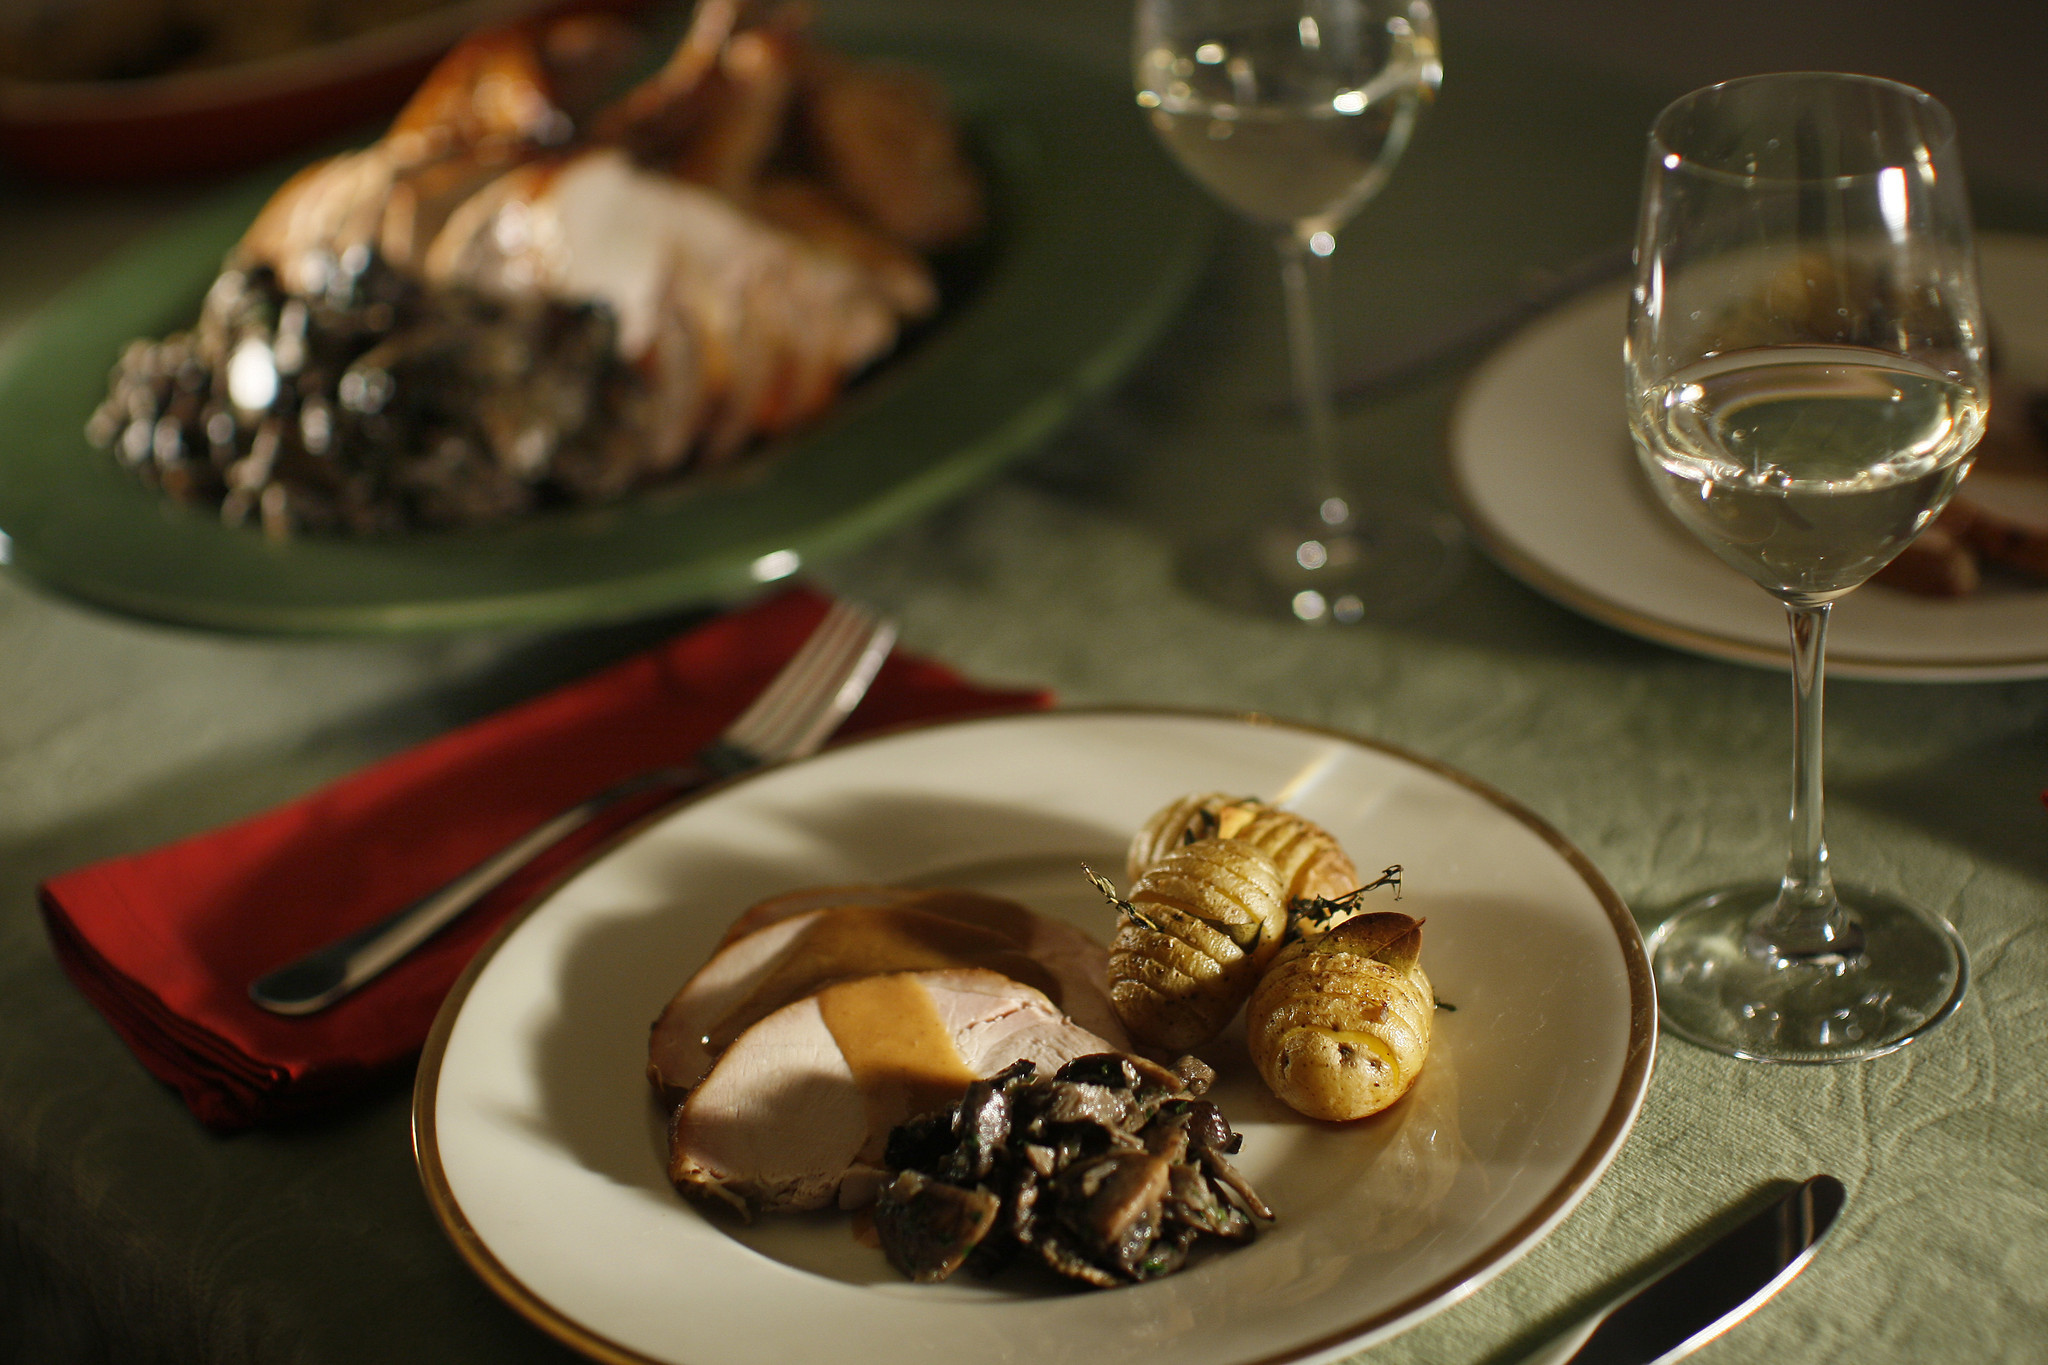 Photos: 97 great Thanksgiving recipes - Roast turkey with wild mushrooms